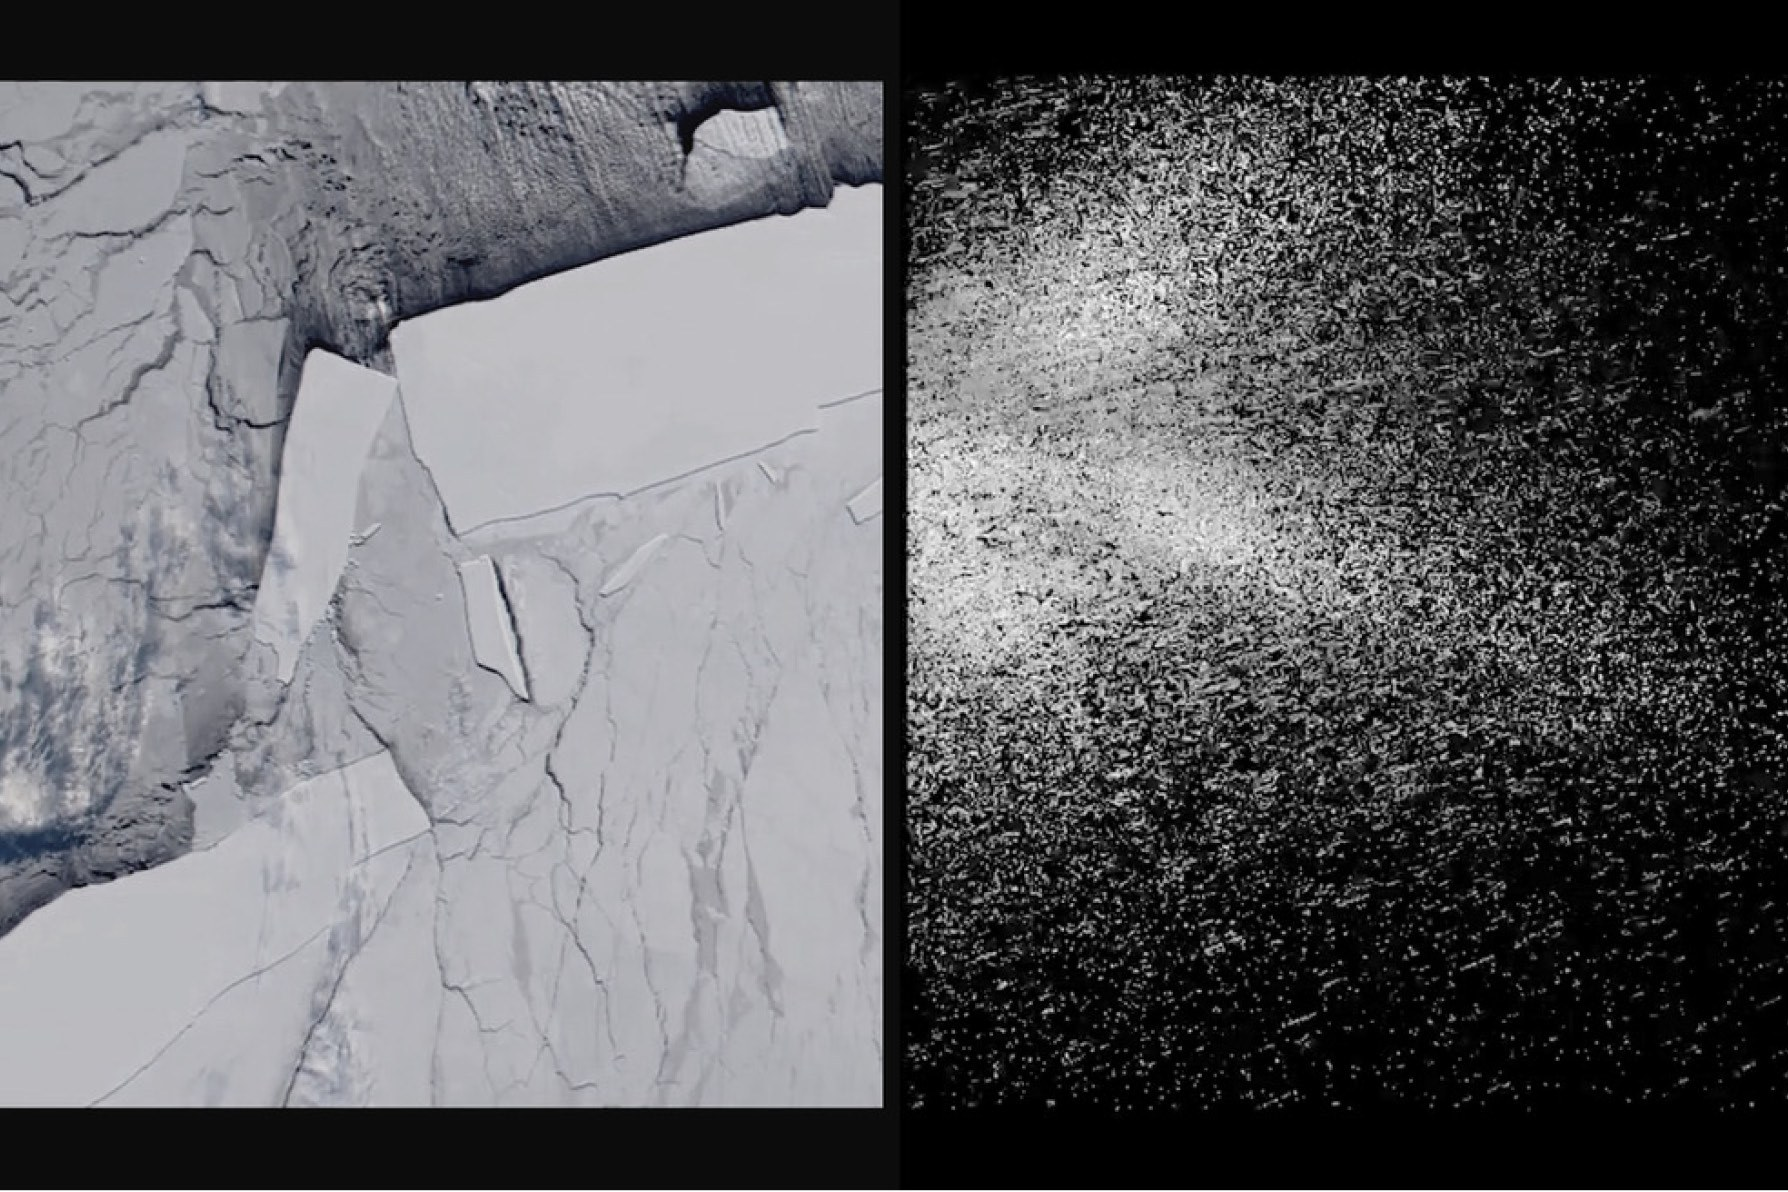 Left: A MODIS spectral image of the B15 iceberg family, NASA Visible Earth. Right: Sound-image mapping of the calving event using radar, by the artist.